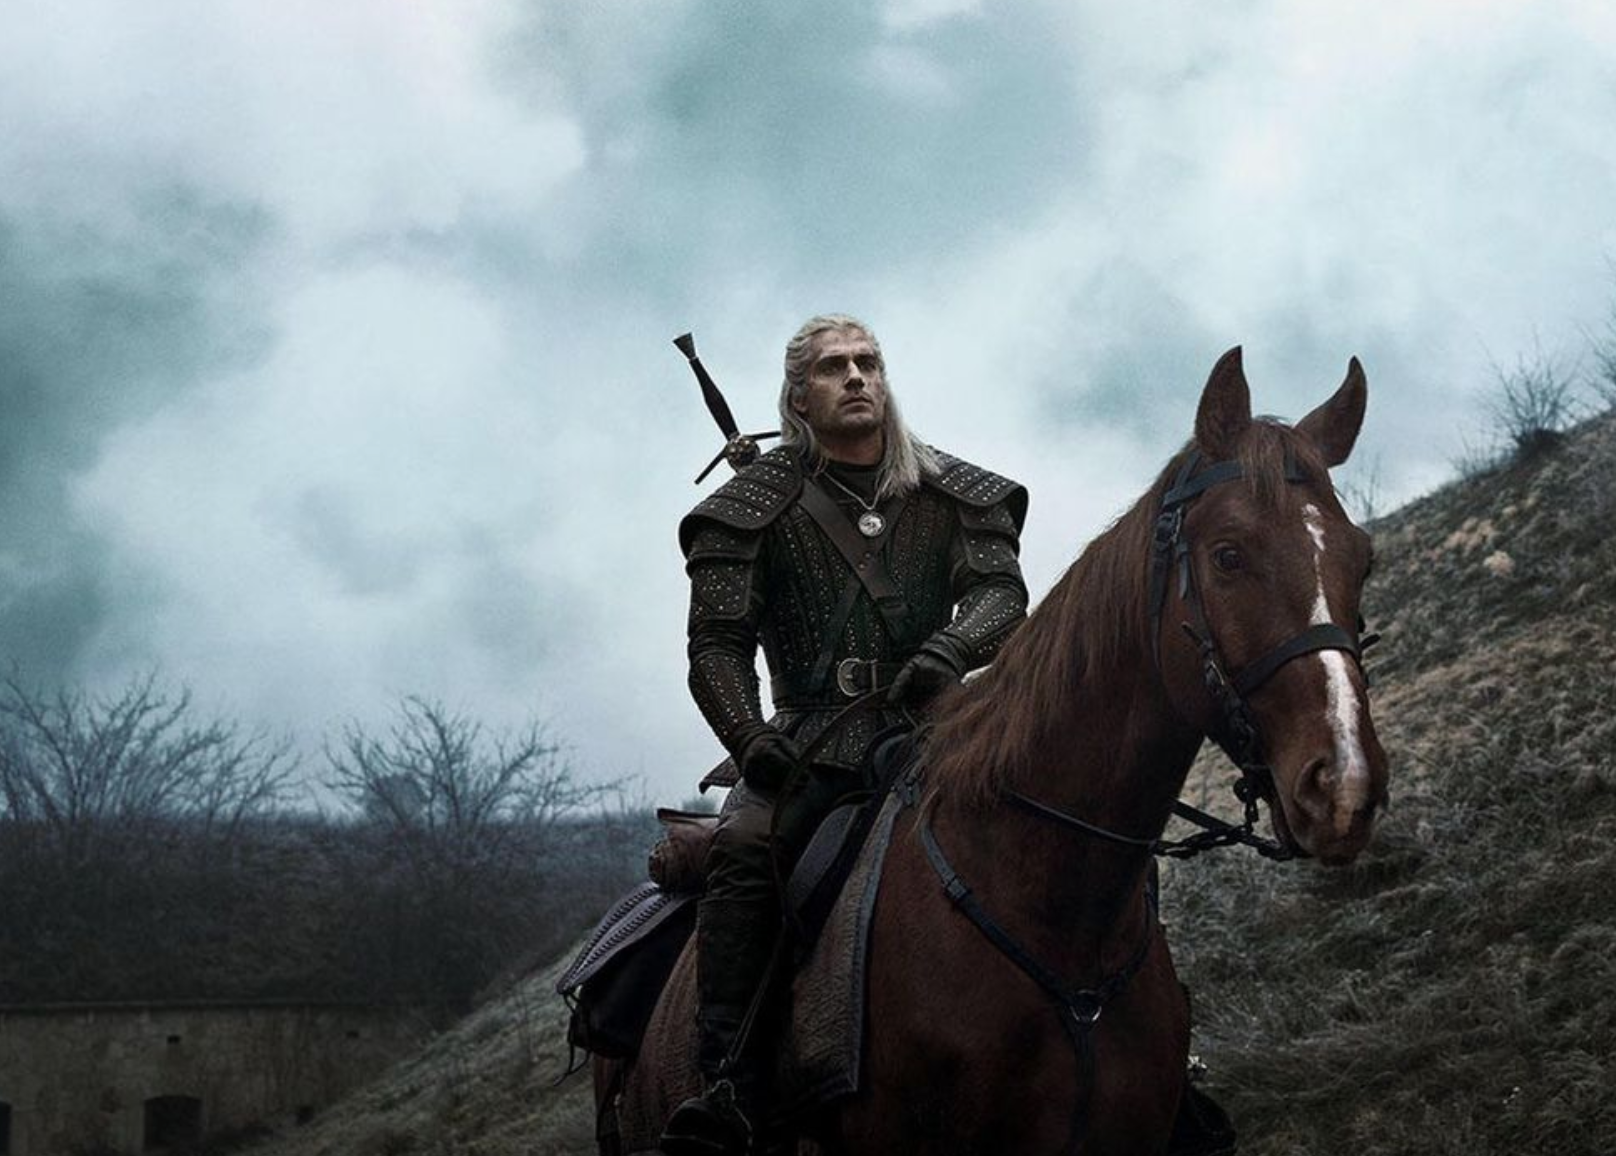 The First Trailer for The Witcher is Finally Here